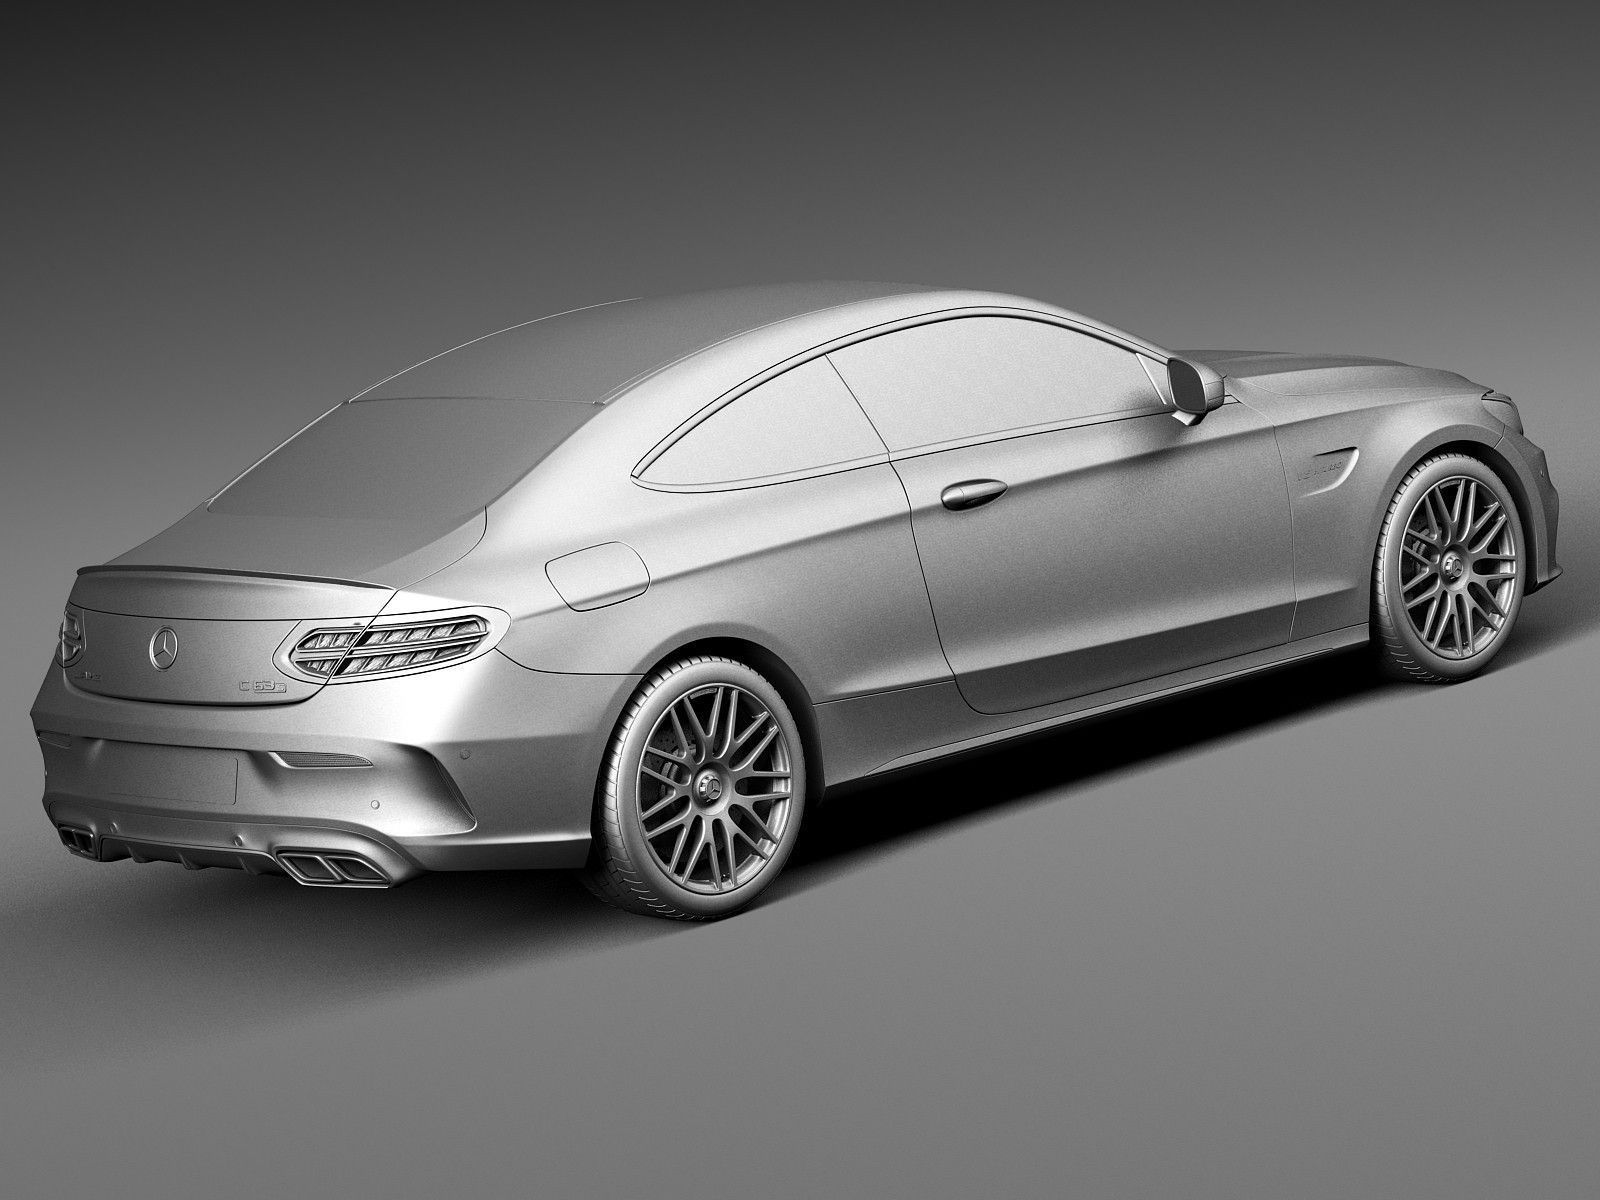 mercedes benz coupe model - photo #18